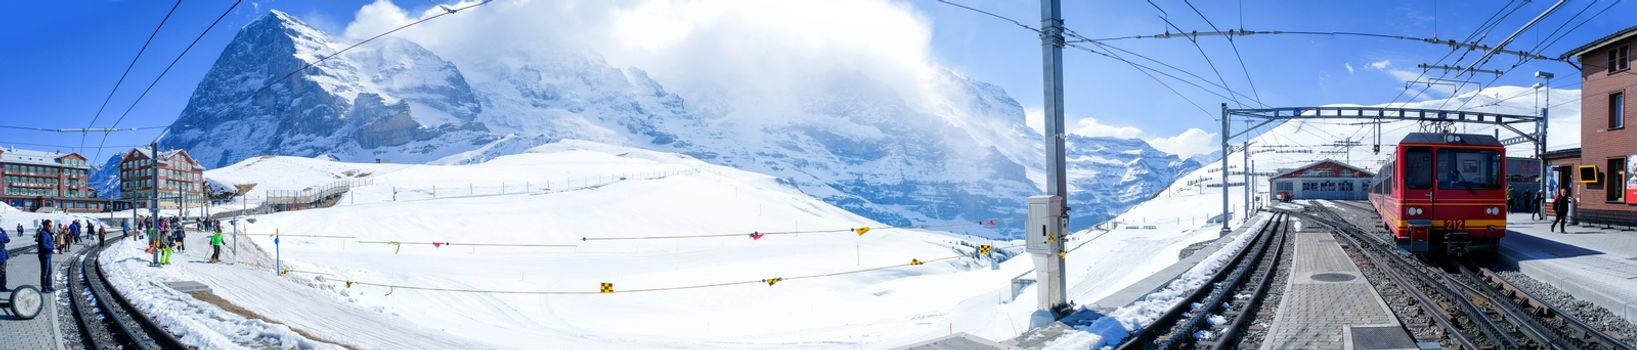 KLEINE SCHEIDEGG, SWITZERLAND - MARCH 28: Panoramic view Tourist train is coming down from the Jungfrau in Kleine Scheidegg, Switzerland on March 28 2017. It's a mountain pass at an elevation of 2,061m.